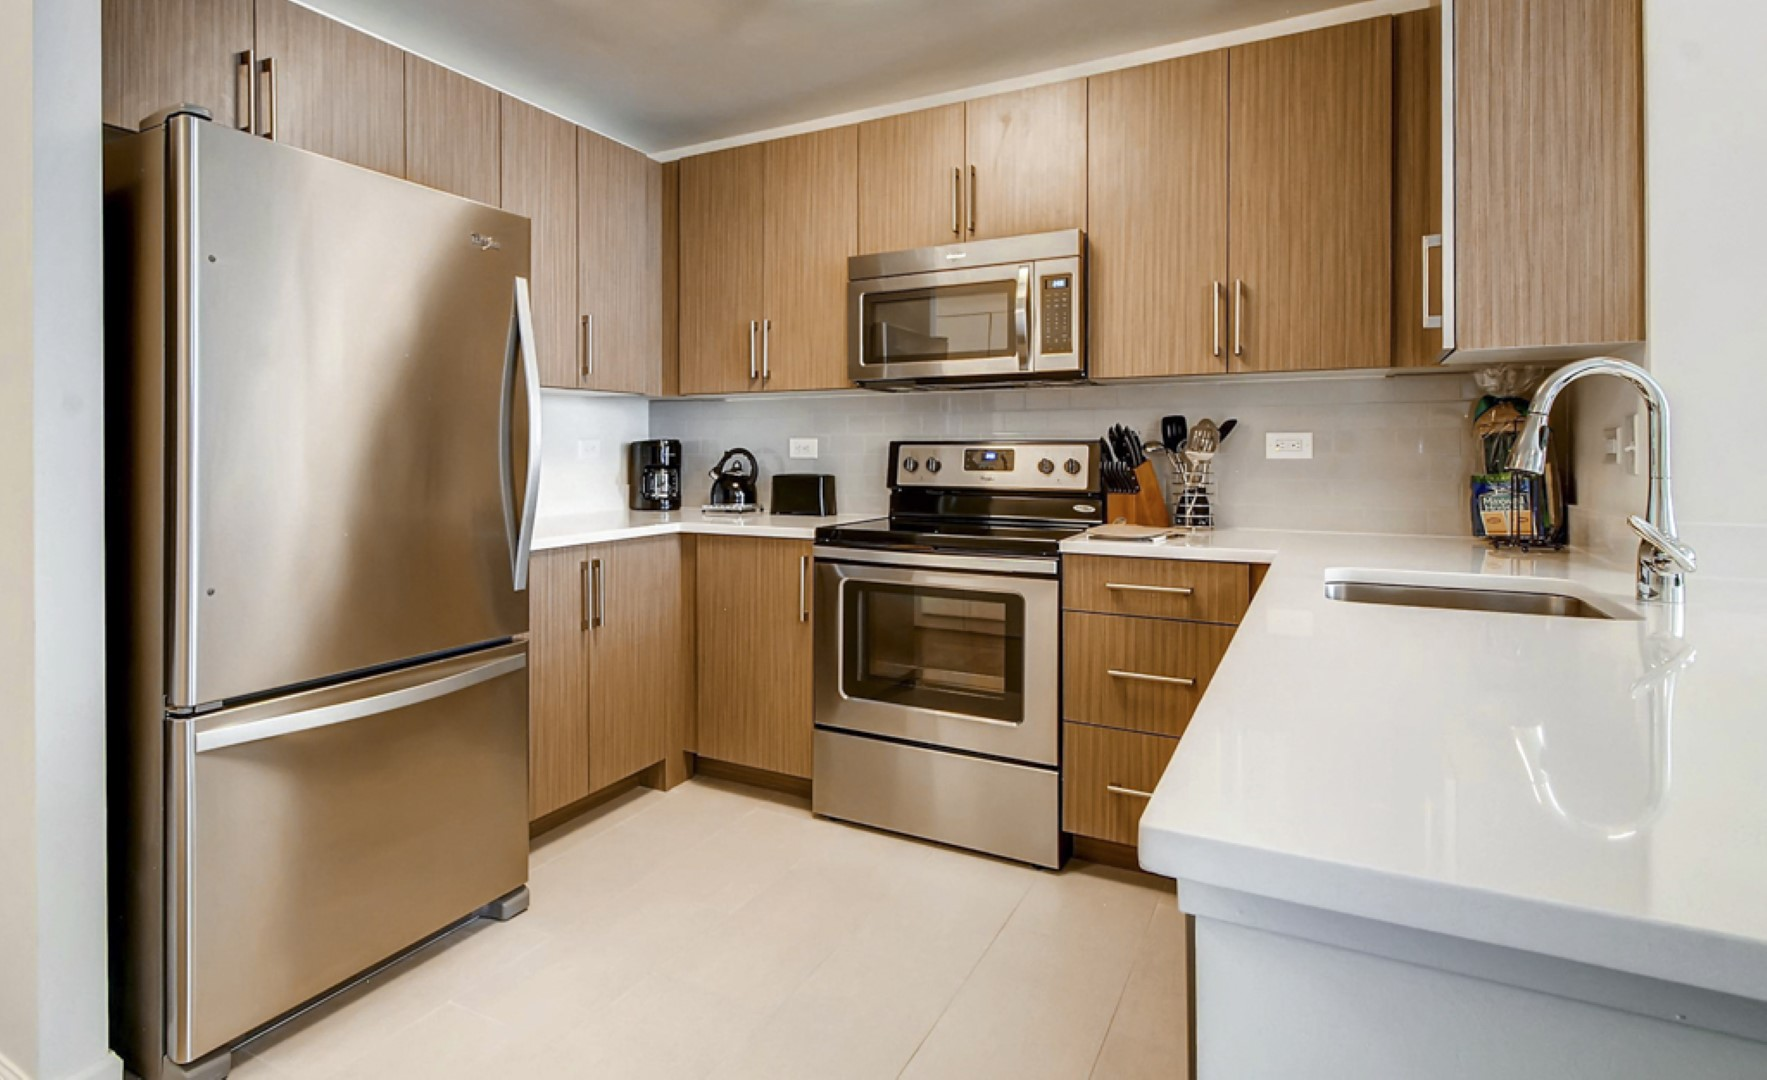 Kitchen at M2 Apartments, Hudson Exchange, Jersey City - Citybase Apartments